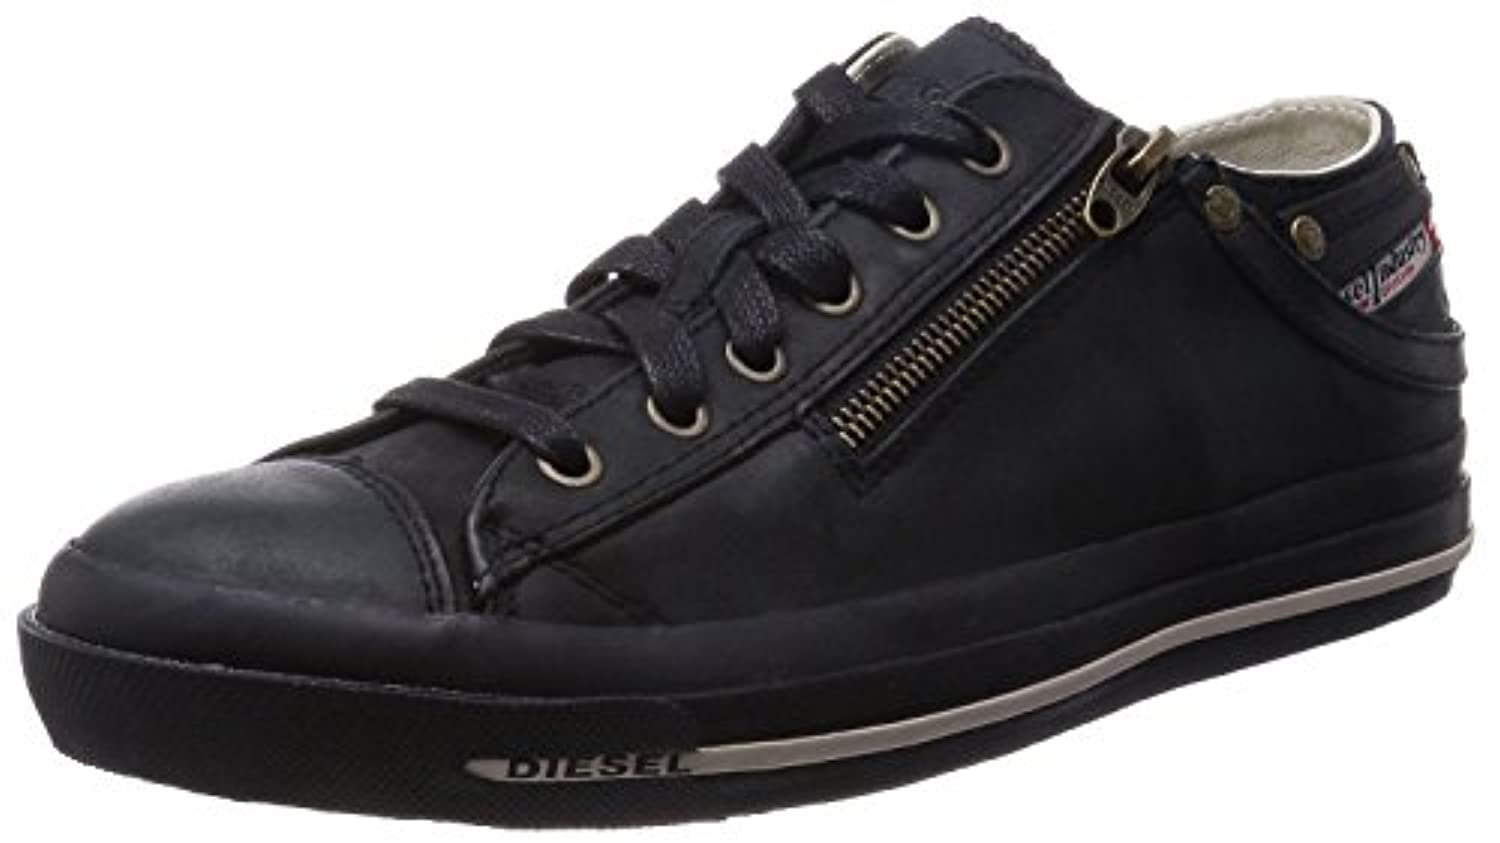 Diesel Expo Zip Low Black Leather Mens Trainers Shoes 9